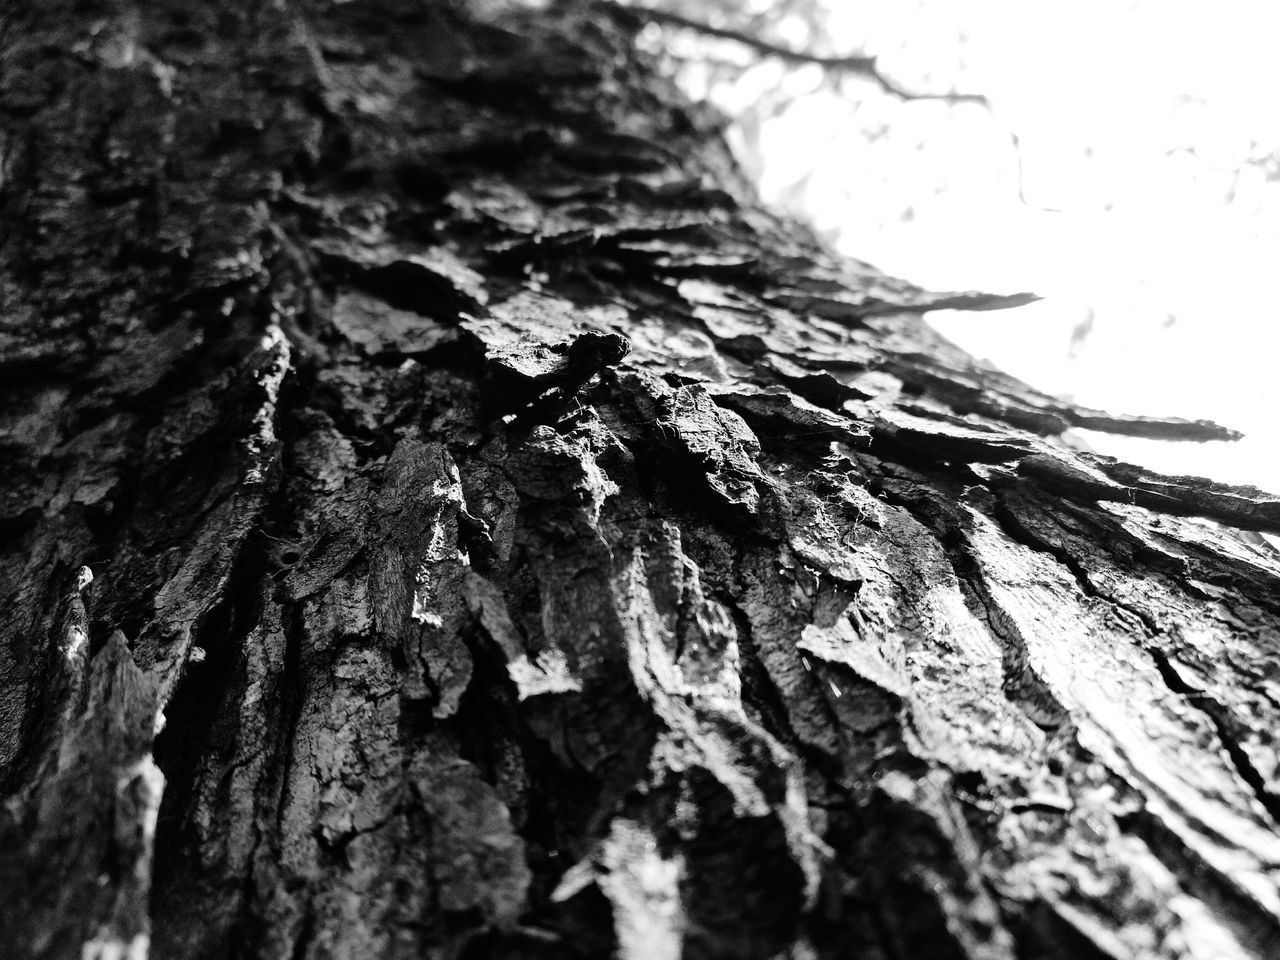 tree trunk, tree, rough, textured, bark, close-up, nature, no people, growth, day, outdoors, beauty in nature